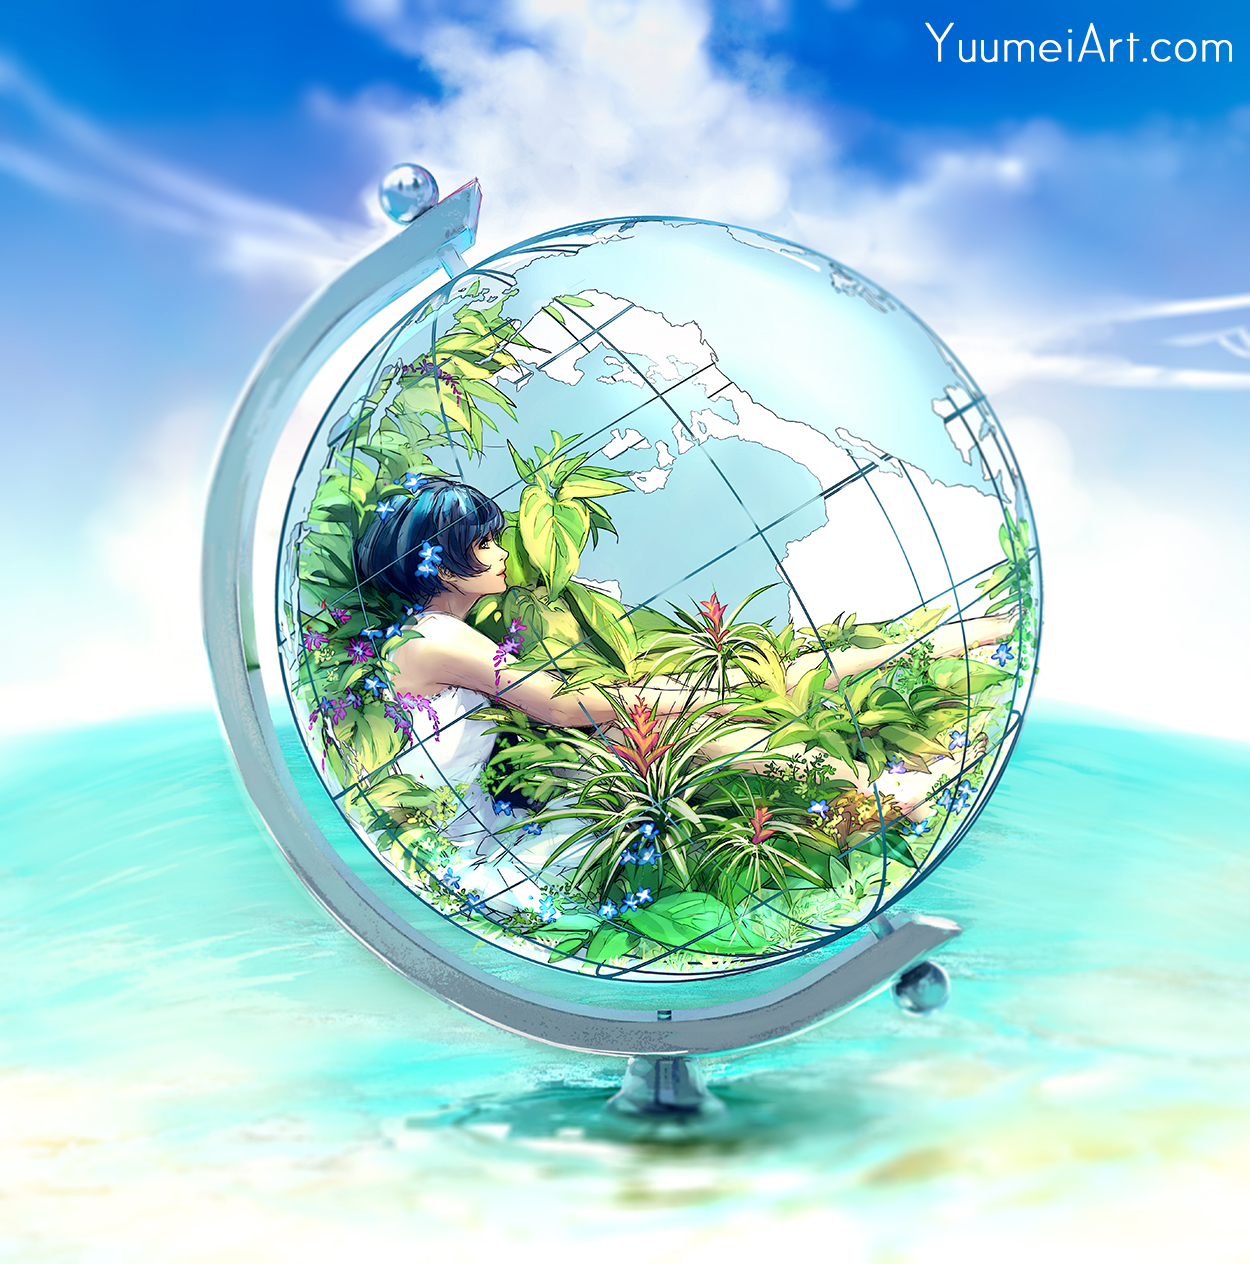 Paradise Within by yuumei